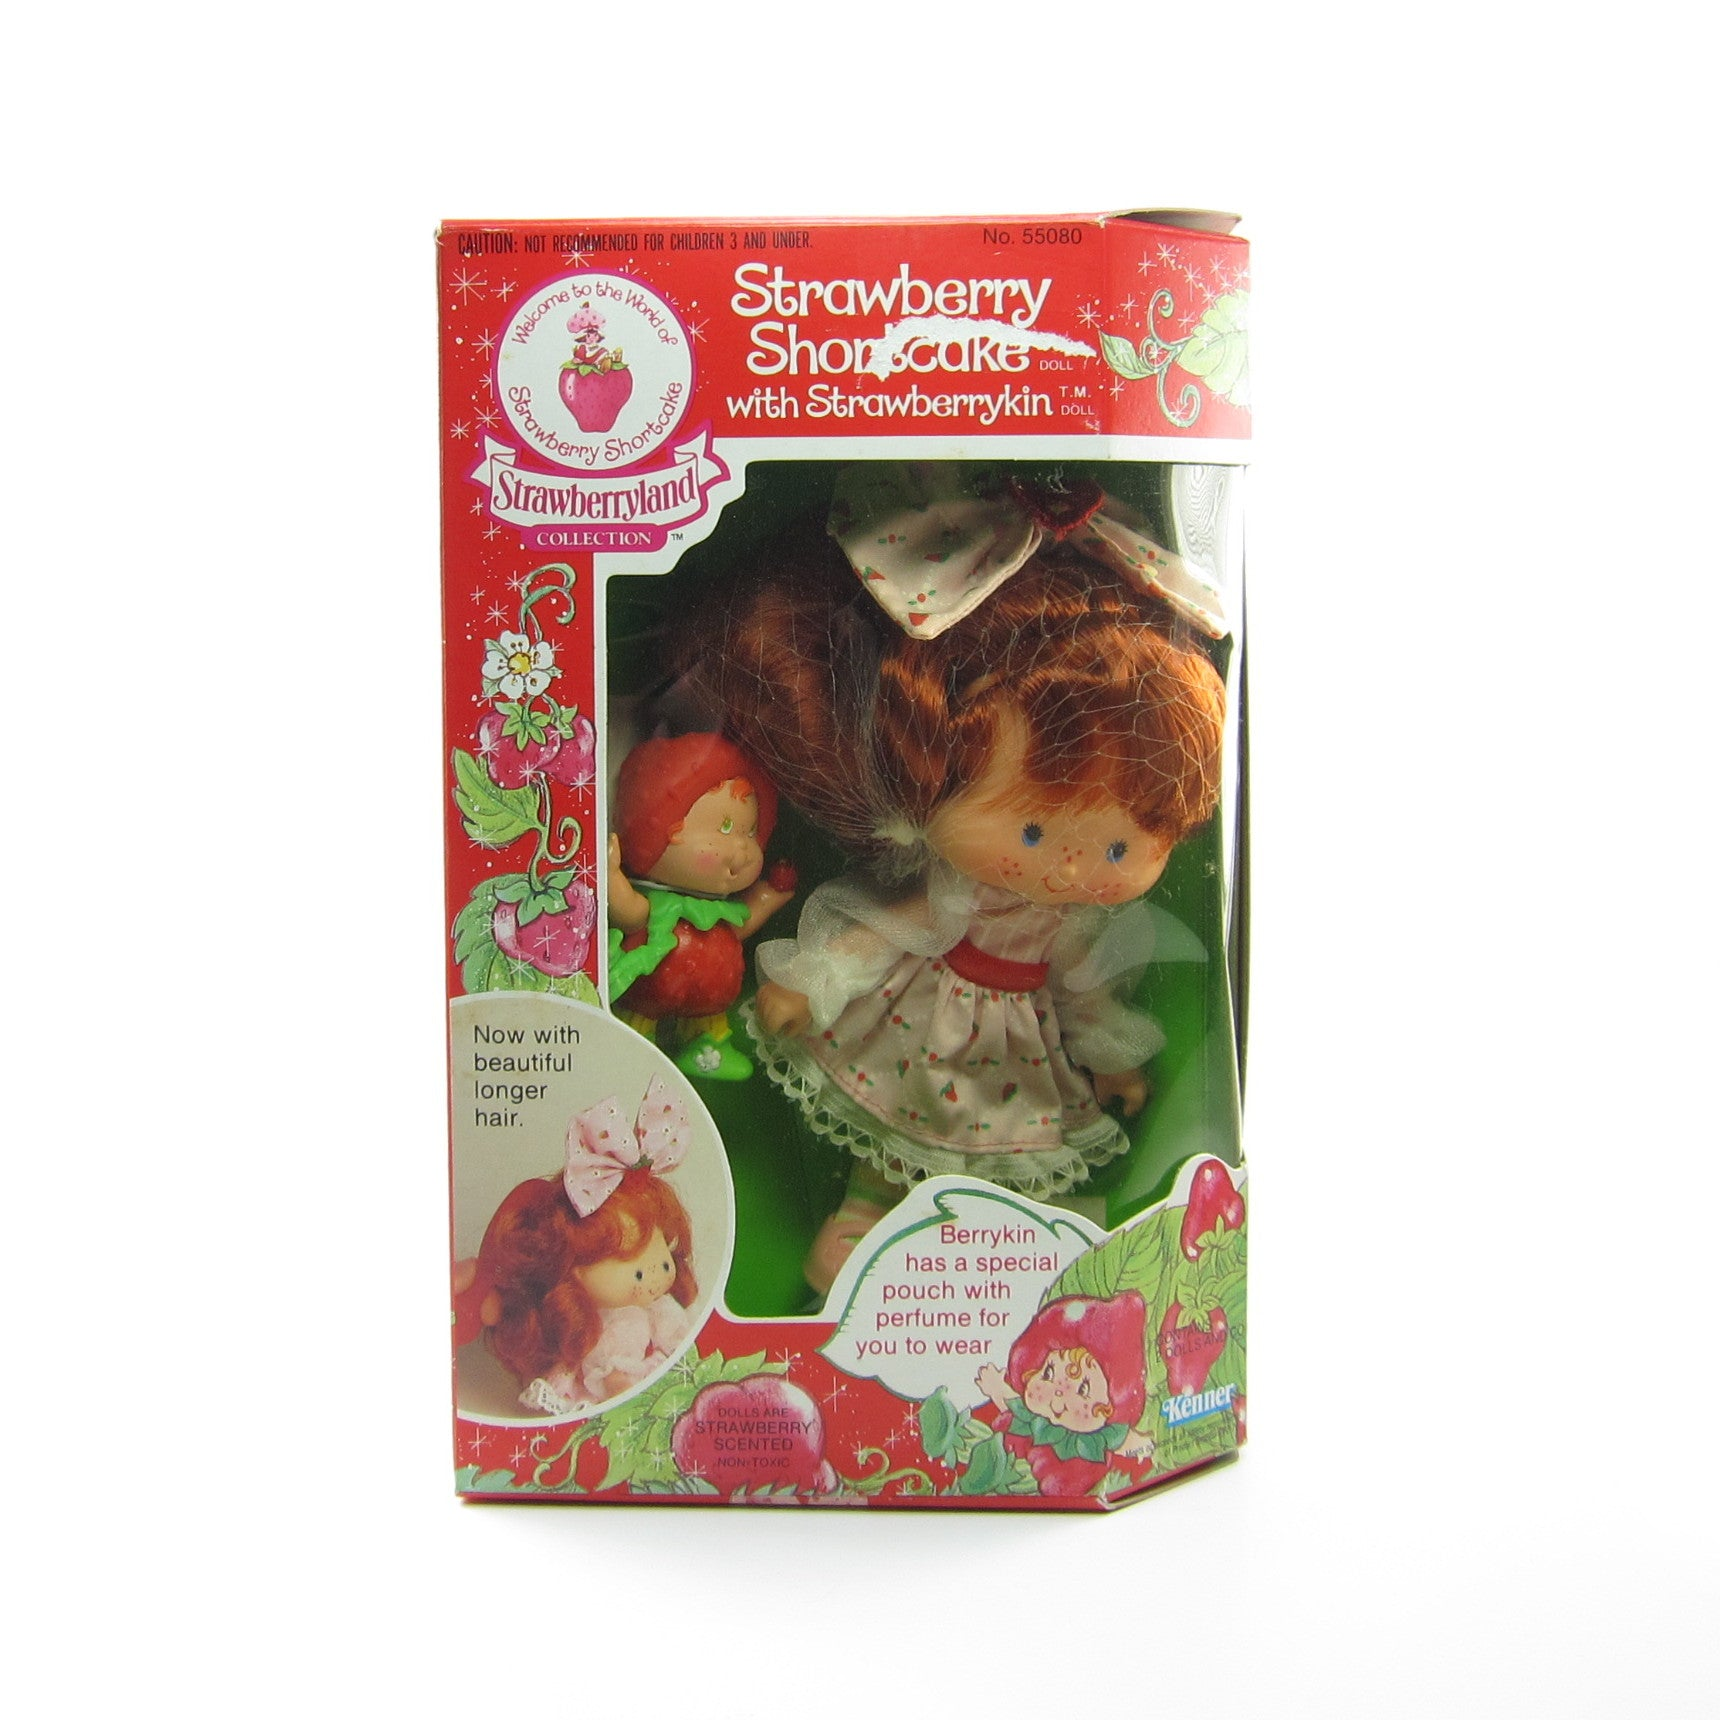 Strawberry Shortcake Berrykin Doll NRFB